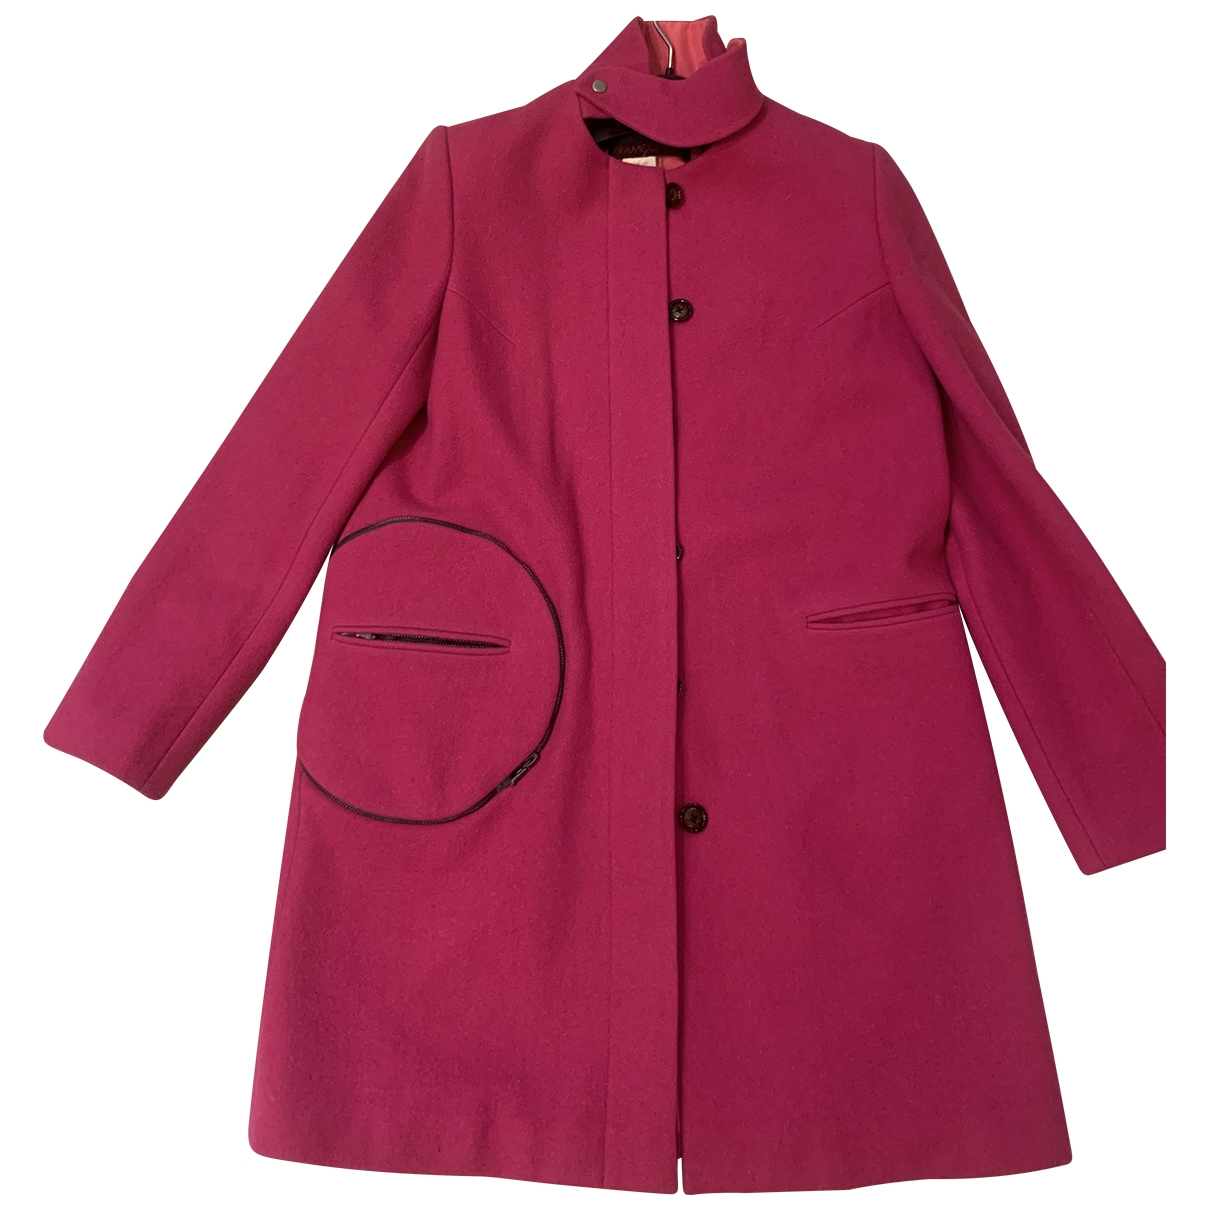 Ramosport \N Pink Wool coat for Women 38 IT